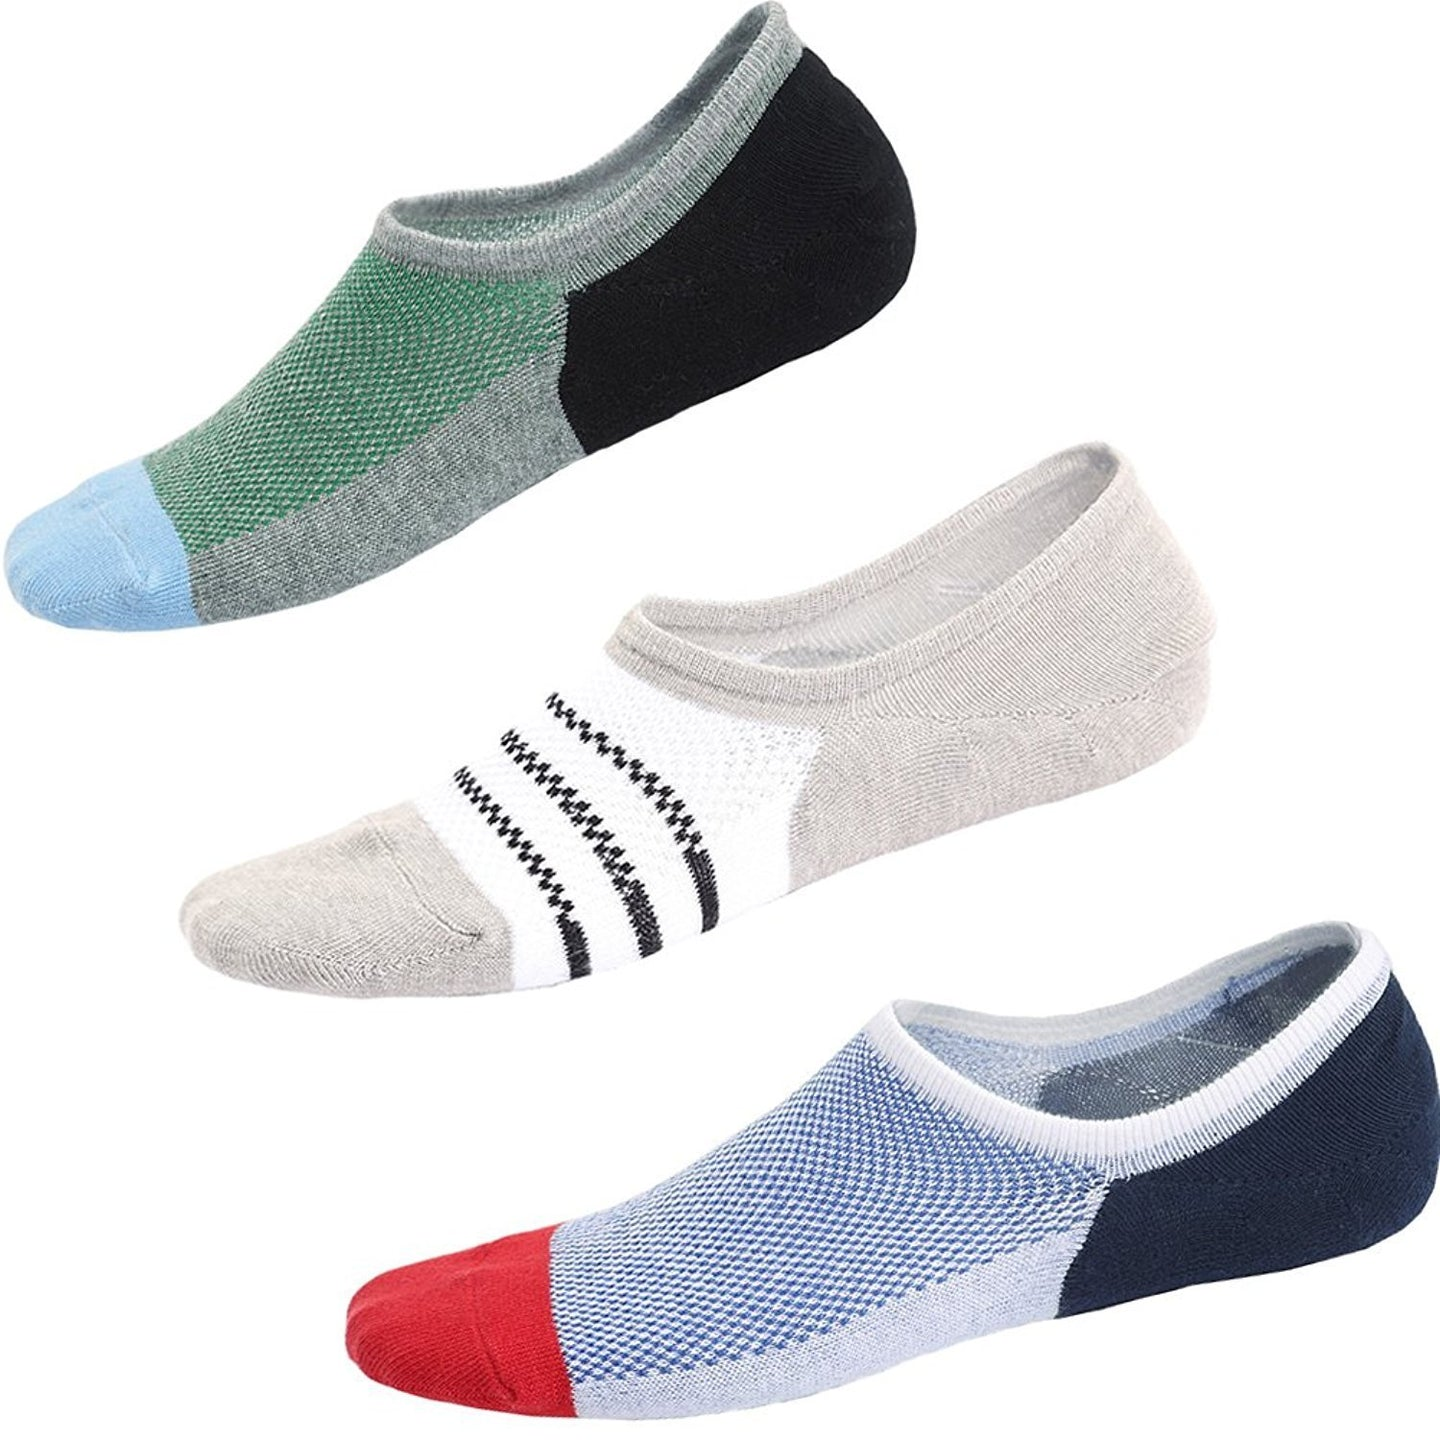 Romano Men's Premium Mercerised Cotton Loafer Socks - Pack of 3 romanonx.com